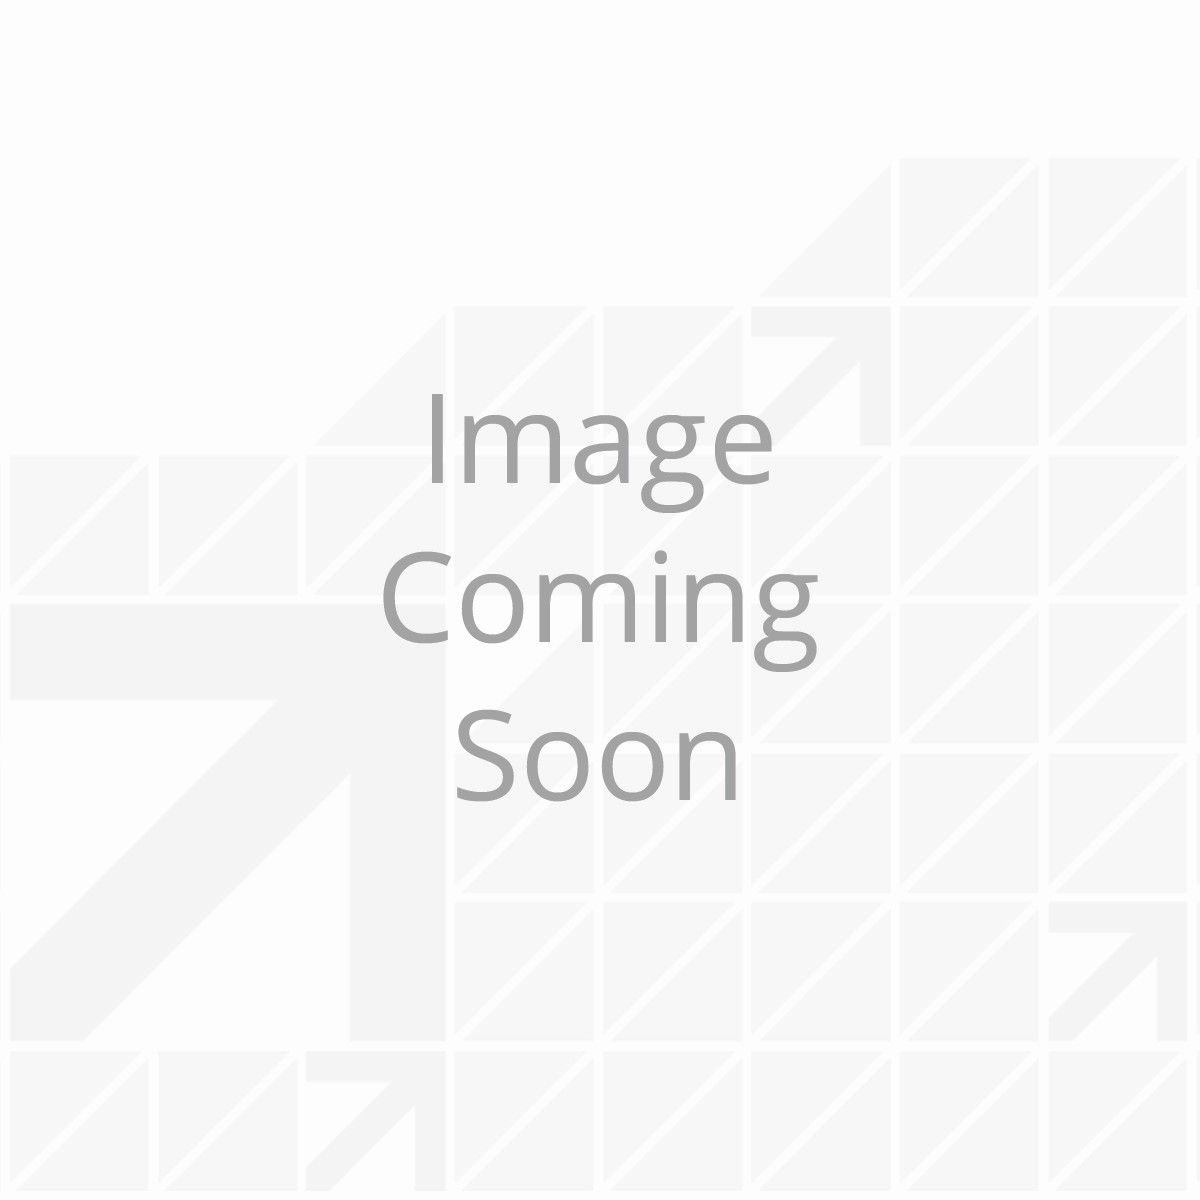 Lippert on LinkedIn